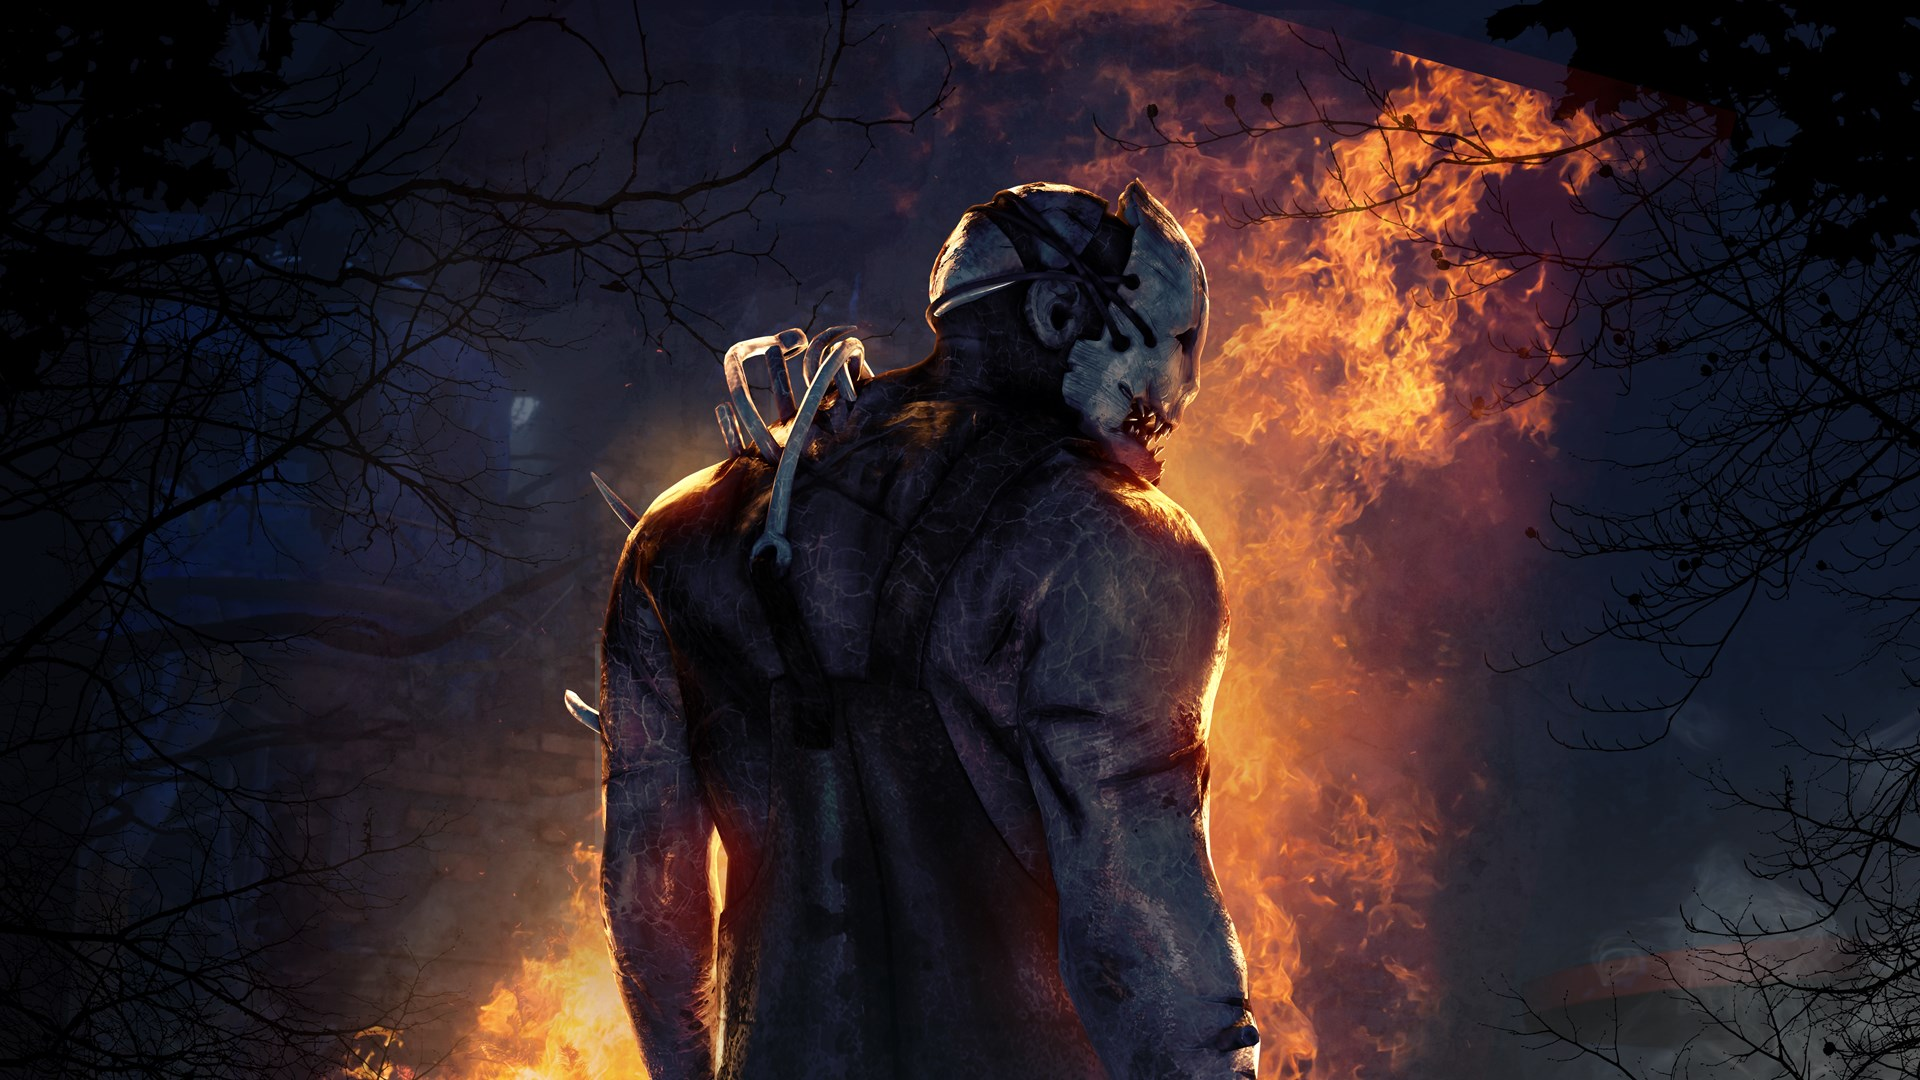 Nintendo Switch: in arrivo Dead By Daylight thumbnail